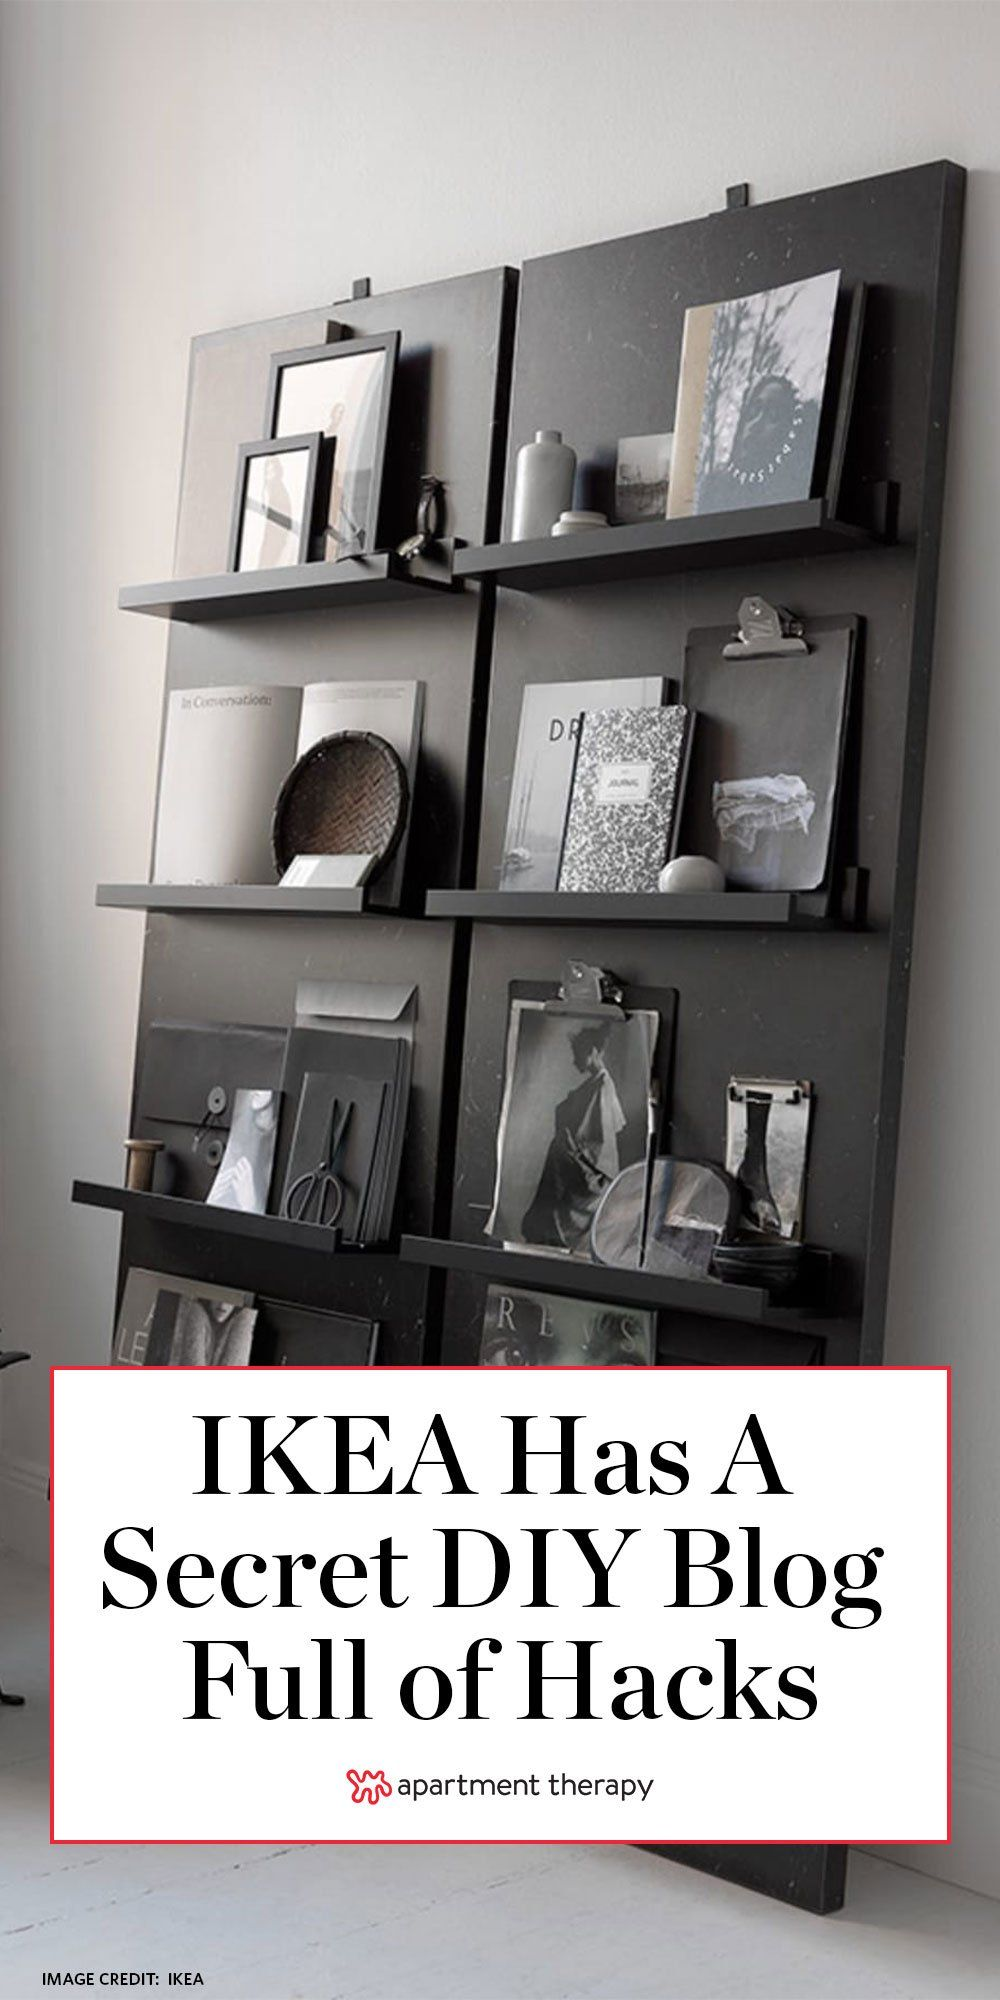 "IKEA has a ""secret"" blog devoted to hacks, and it's a DIY dream. #ikeahacks #ikeaprojects #homeprojects #diy #diyideas #diyprojects #furnitureredo #furnitureflip"